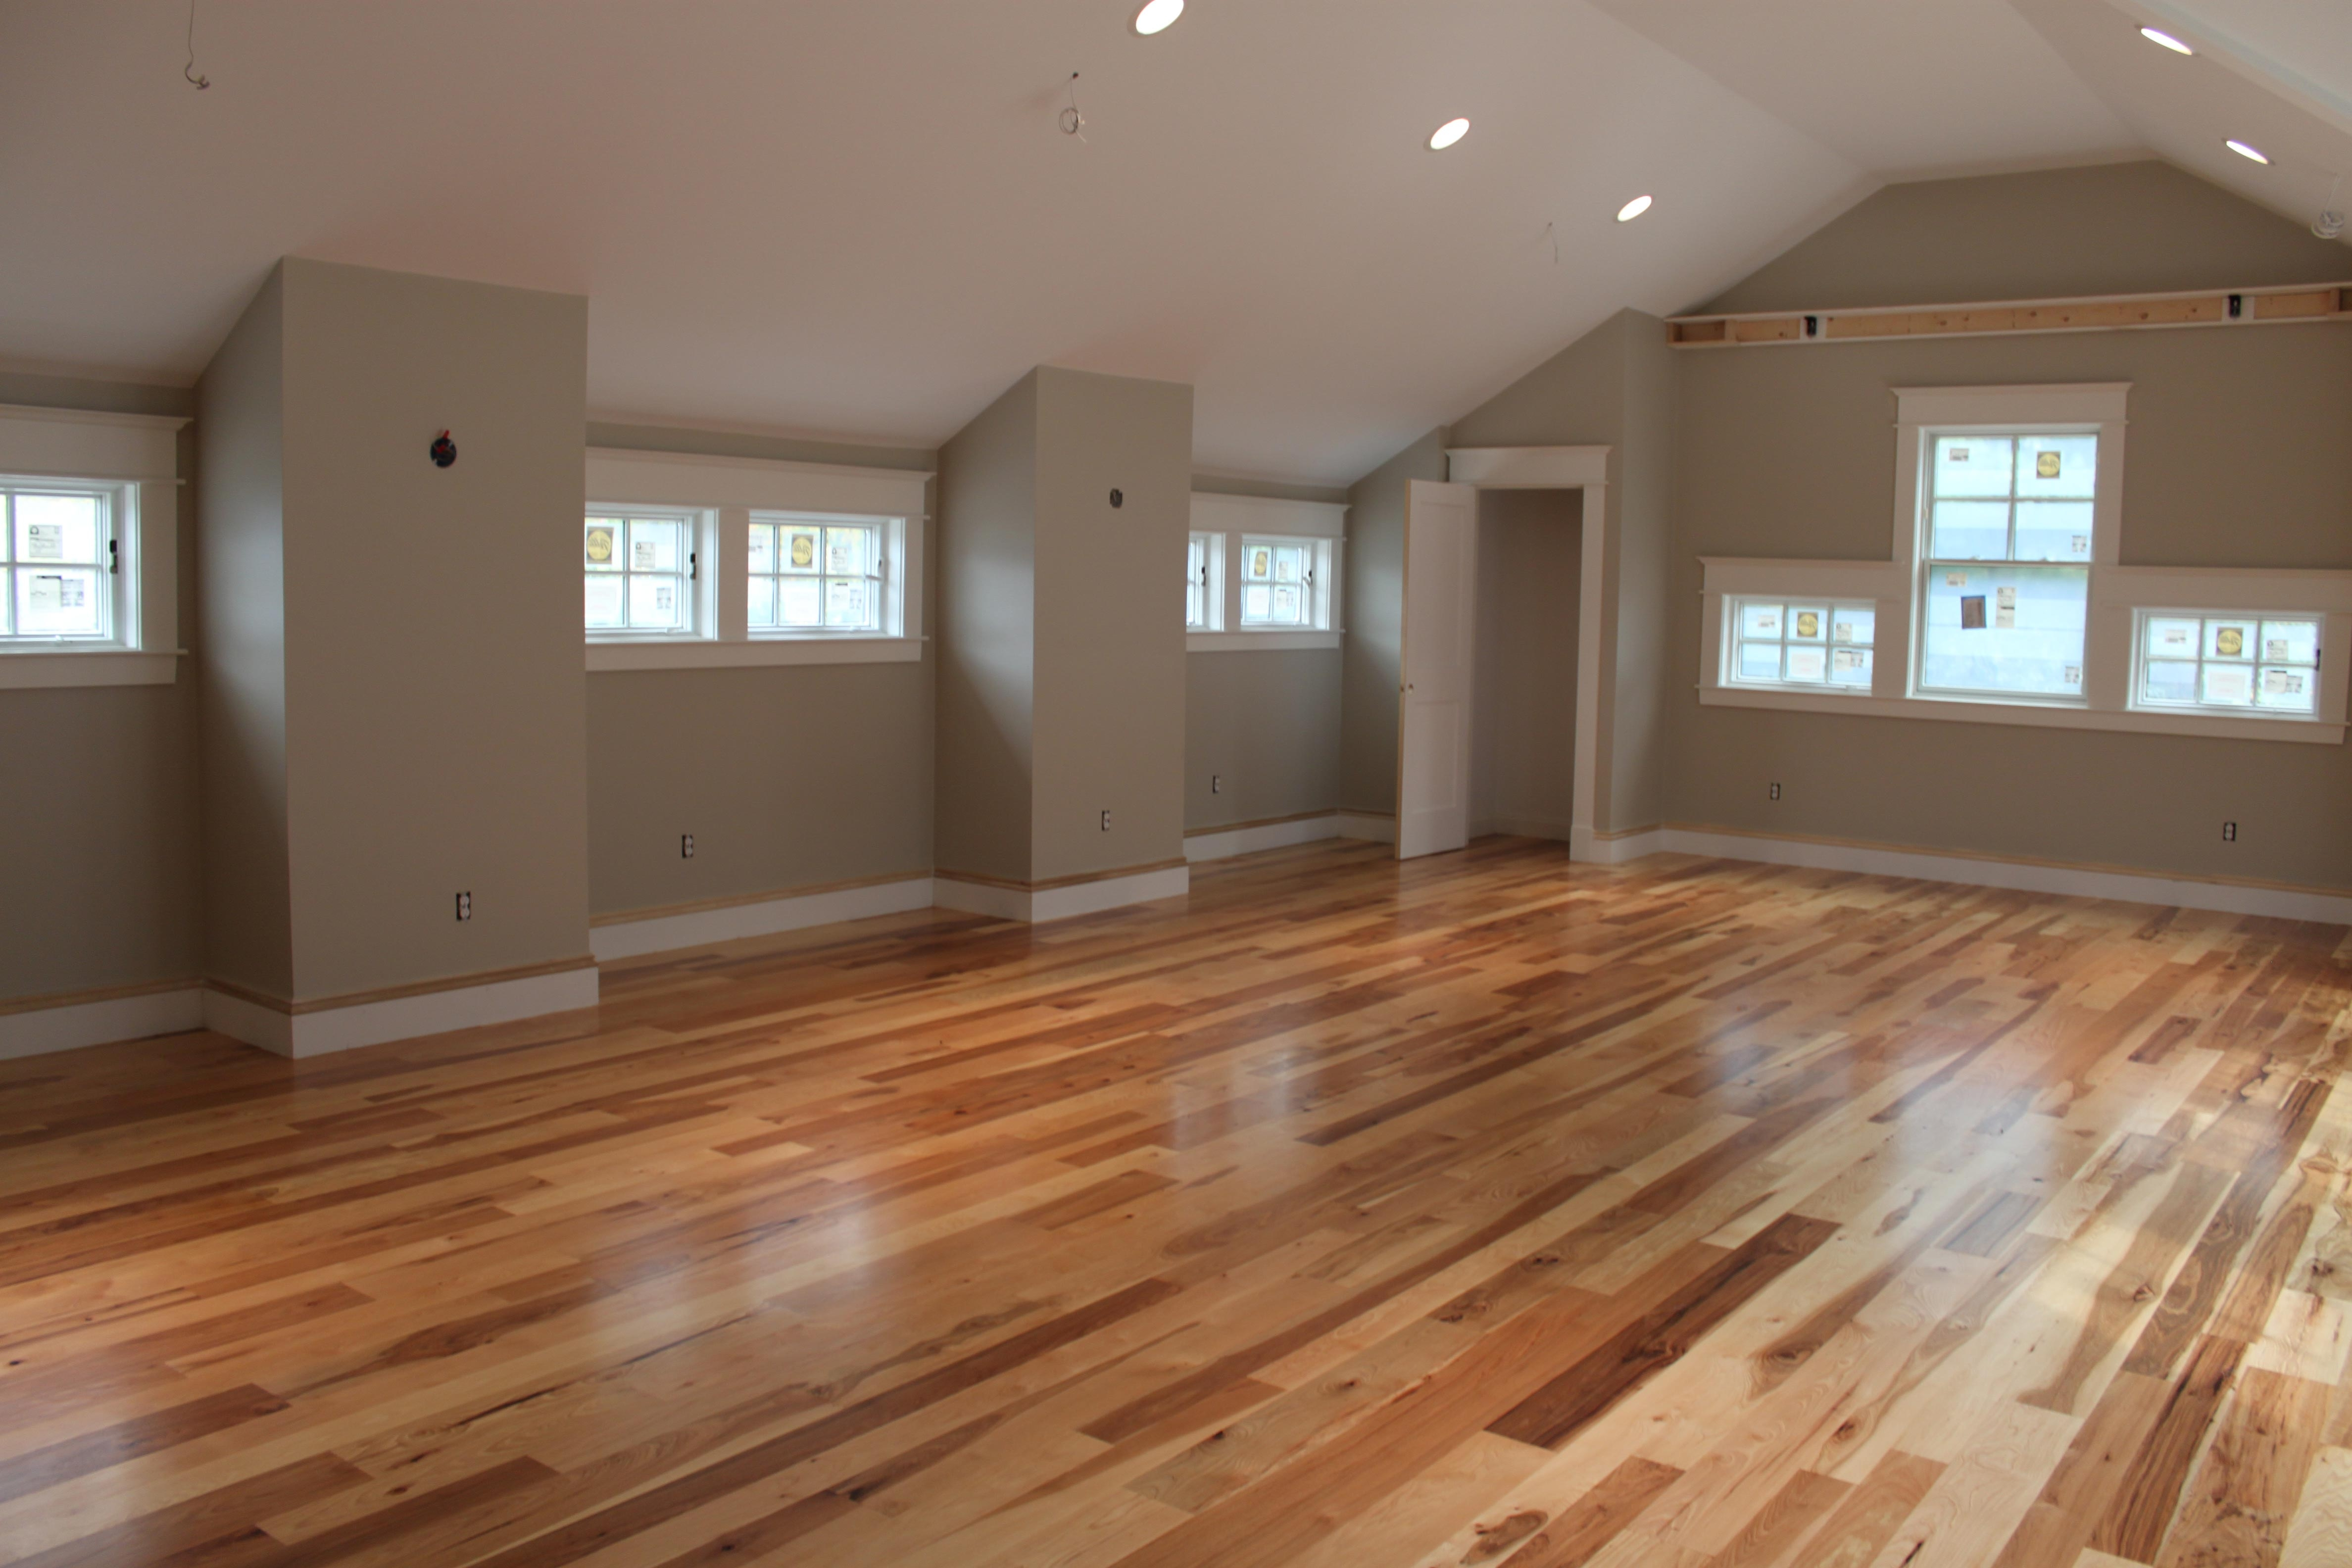 Polyurethane Coating For Wood Floors4752 X 3168